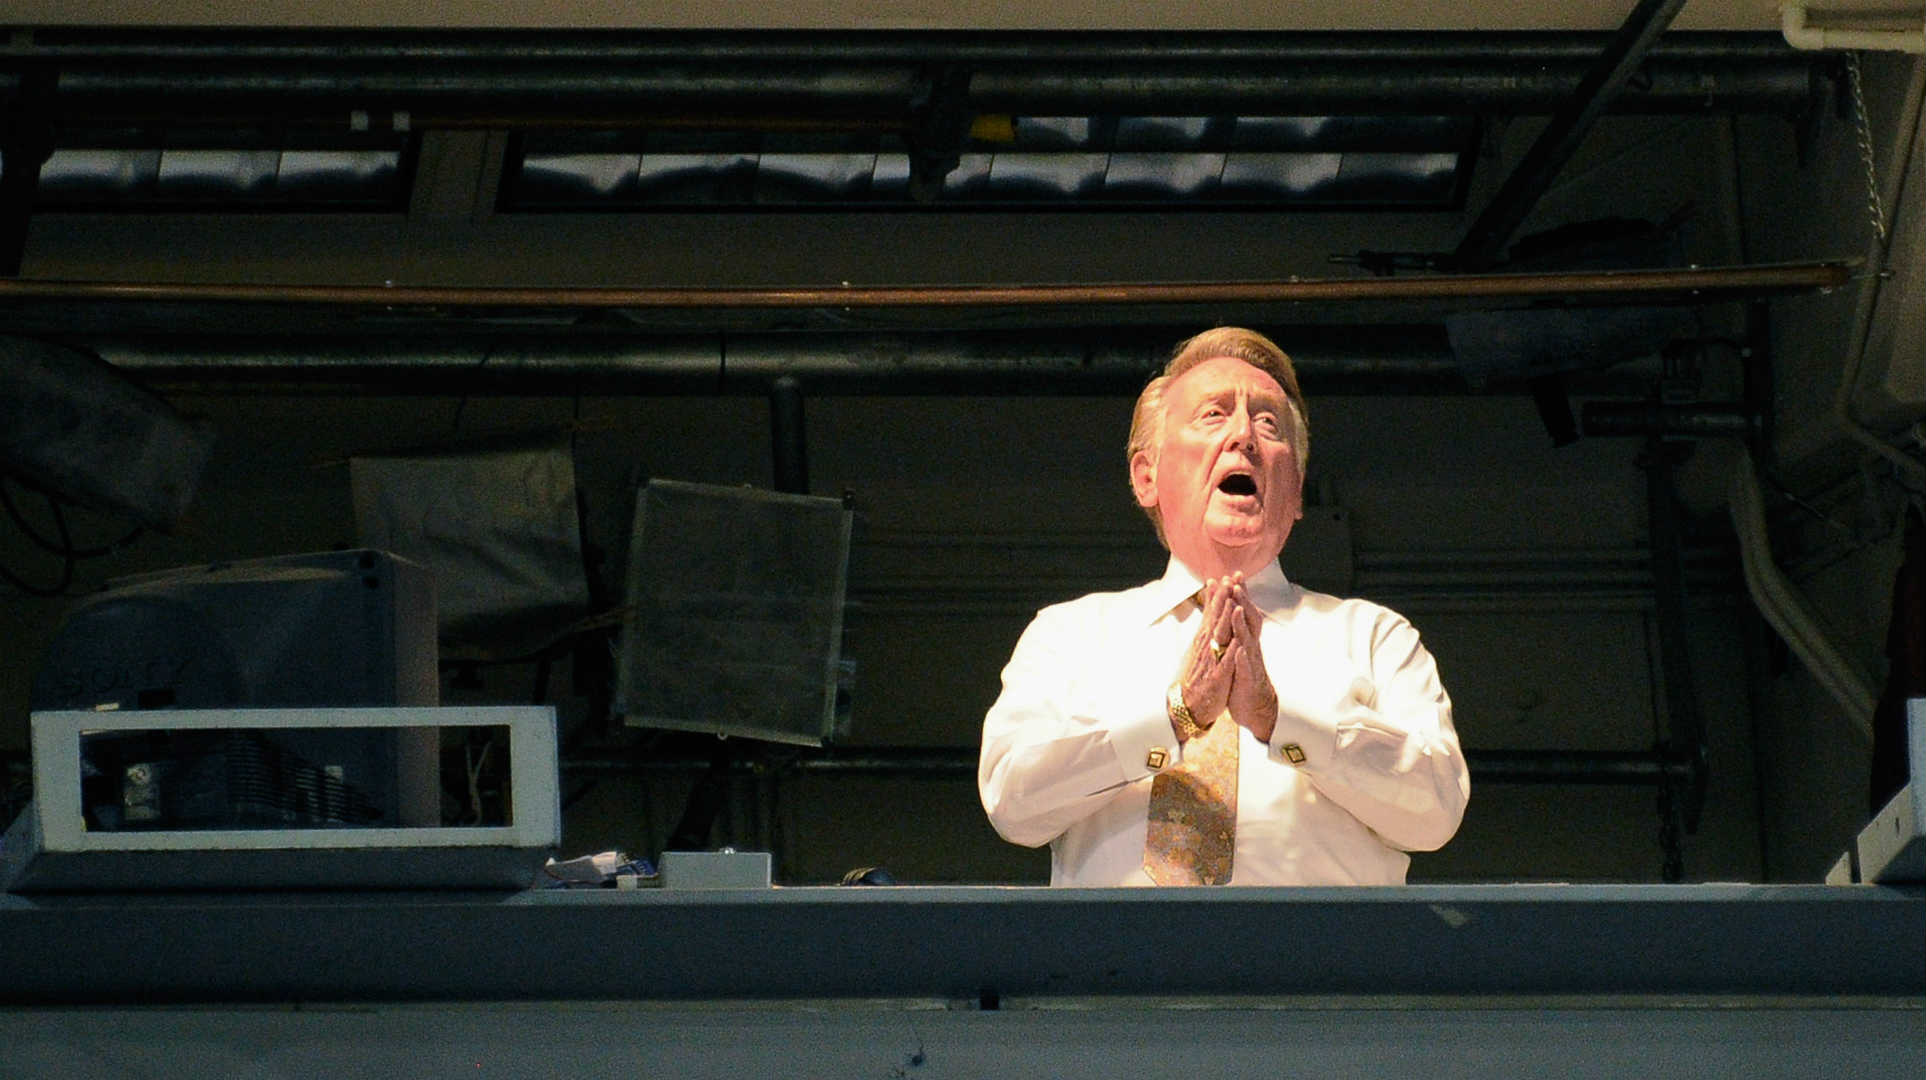 Dodgers announcer Vin Scully